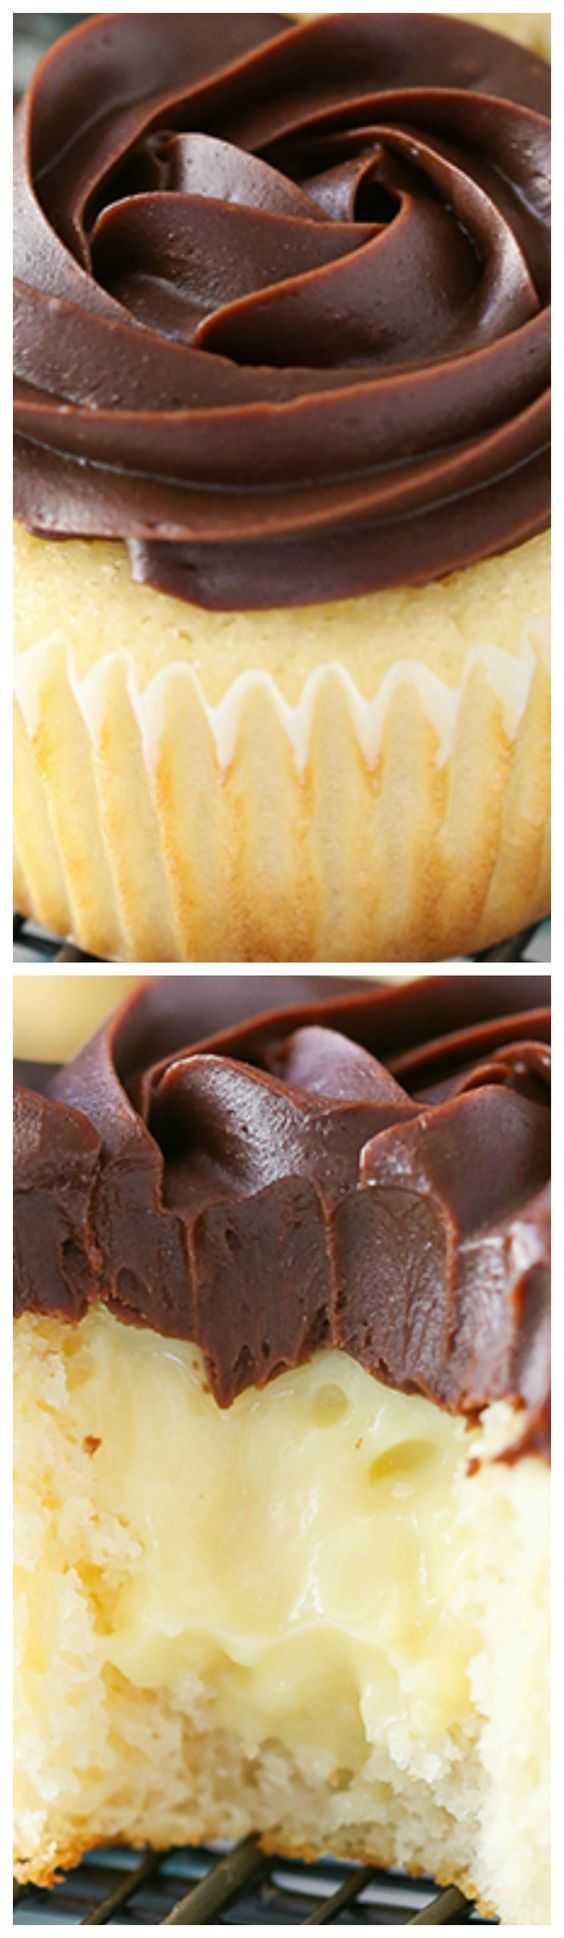 Boston Cream Pie Cupcakes ~ They are to die for... A moist vanilla cupcake pastry cream filling and beautiful chocolate ganache topping make this one tasty cupcake you will definitely want to sink your teeth into.